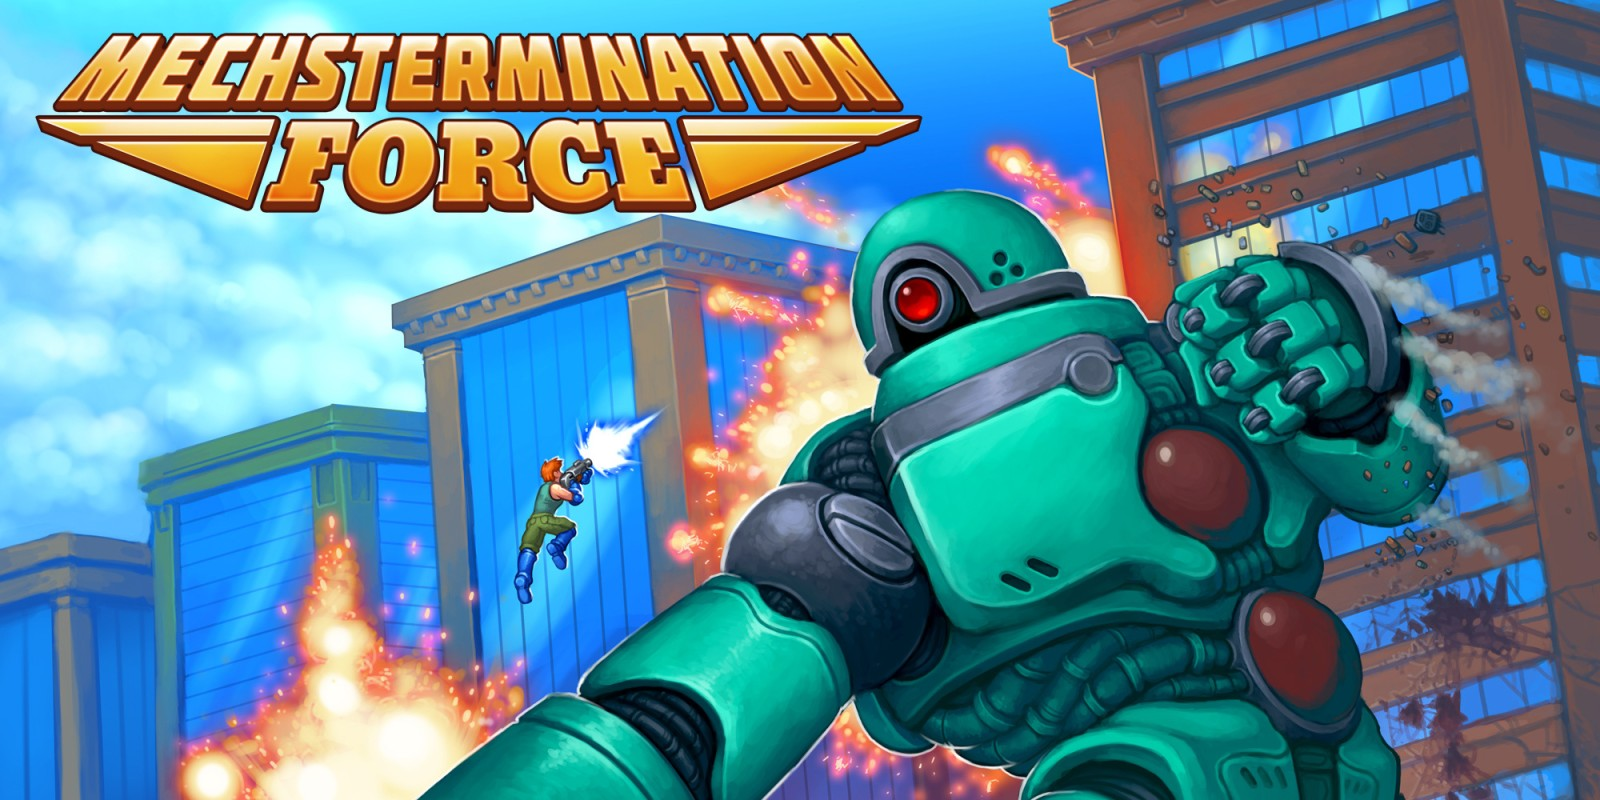 Resultado de imagen de portada Mechstermination Force nintendo switch